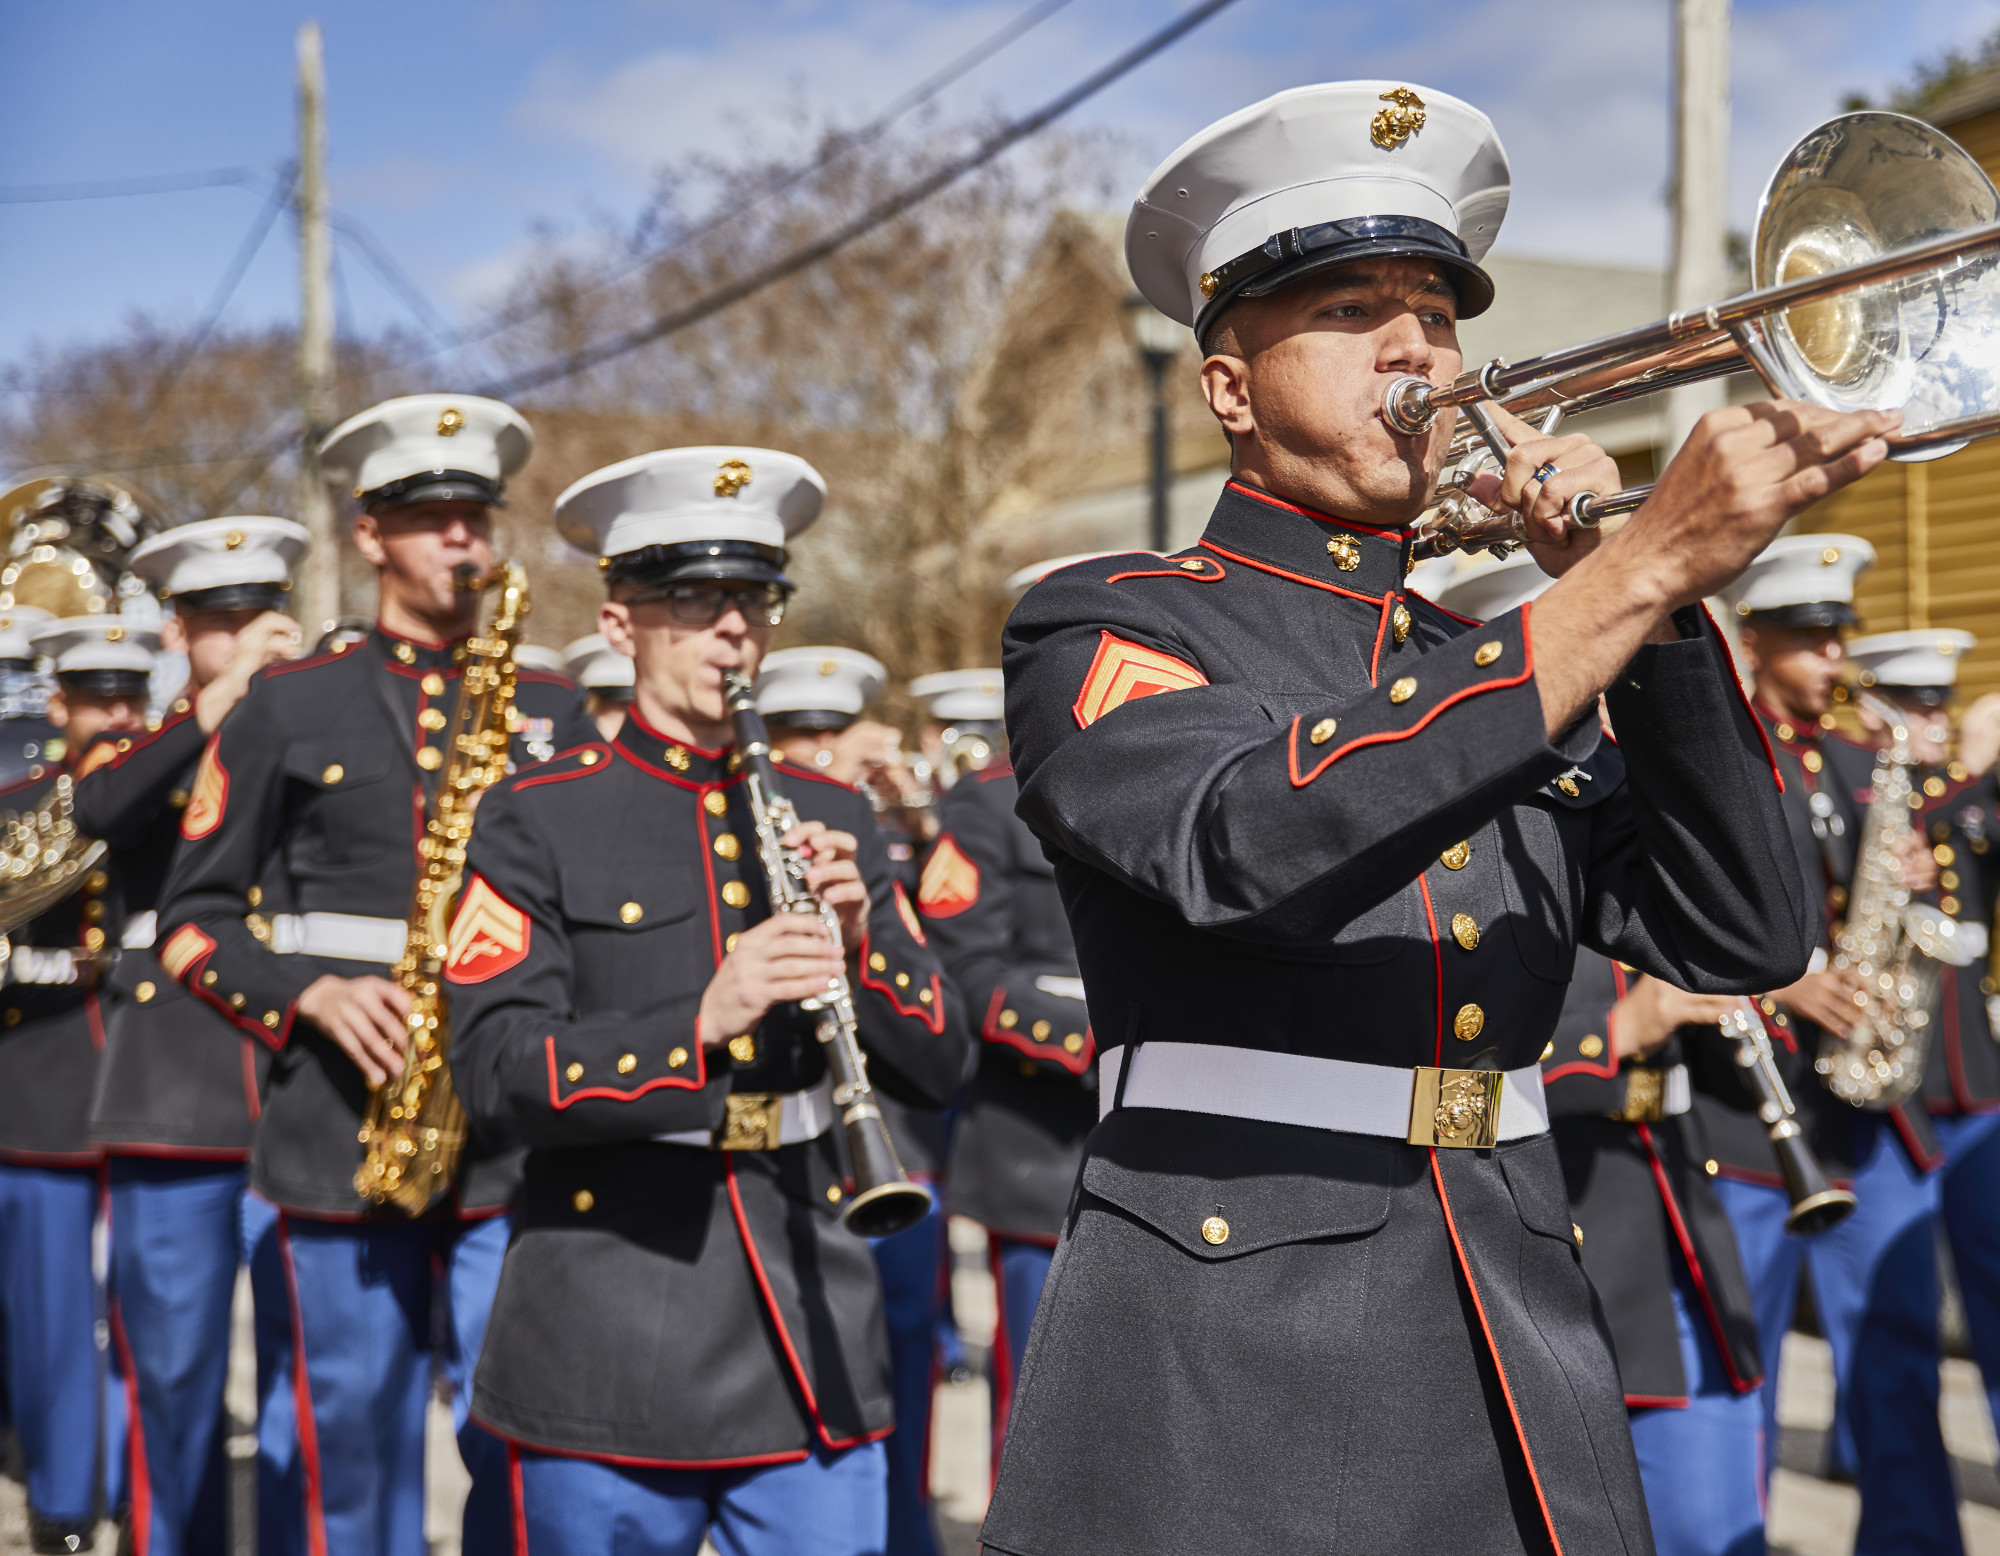 """<b>Established in 1978, the Marine Forces Reserve Band and is comprised of active duty Marines stationed aboard the Marine Corps Support Facility in New Orleans, Louisiana. Prepared to """"Fight Tonight,"""" these Marines can be called upon to provide security, both domestically and overseas. The band performs in over 350 concerts, parades, and ceremonies before more than 8 million people annually and often leads Mardi Gras parades."""